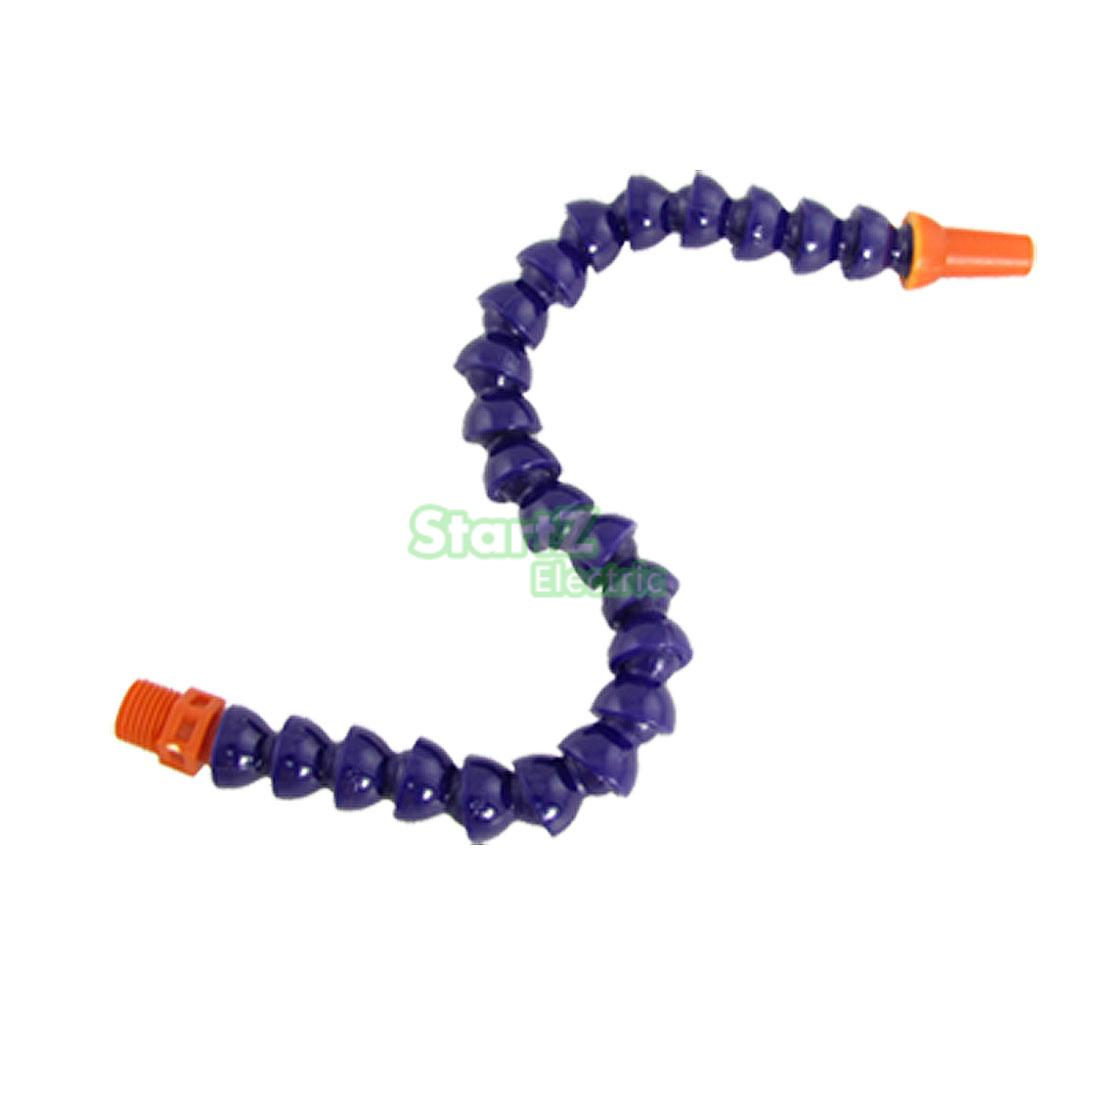 1/4 Round Nozzle Coolant Oil Hose Purple for Lathe Milling f7dz10884aa f8cz12a648b fit for ford thermostat housing water outlet coolant hose